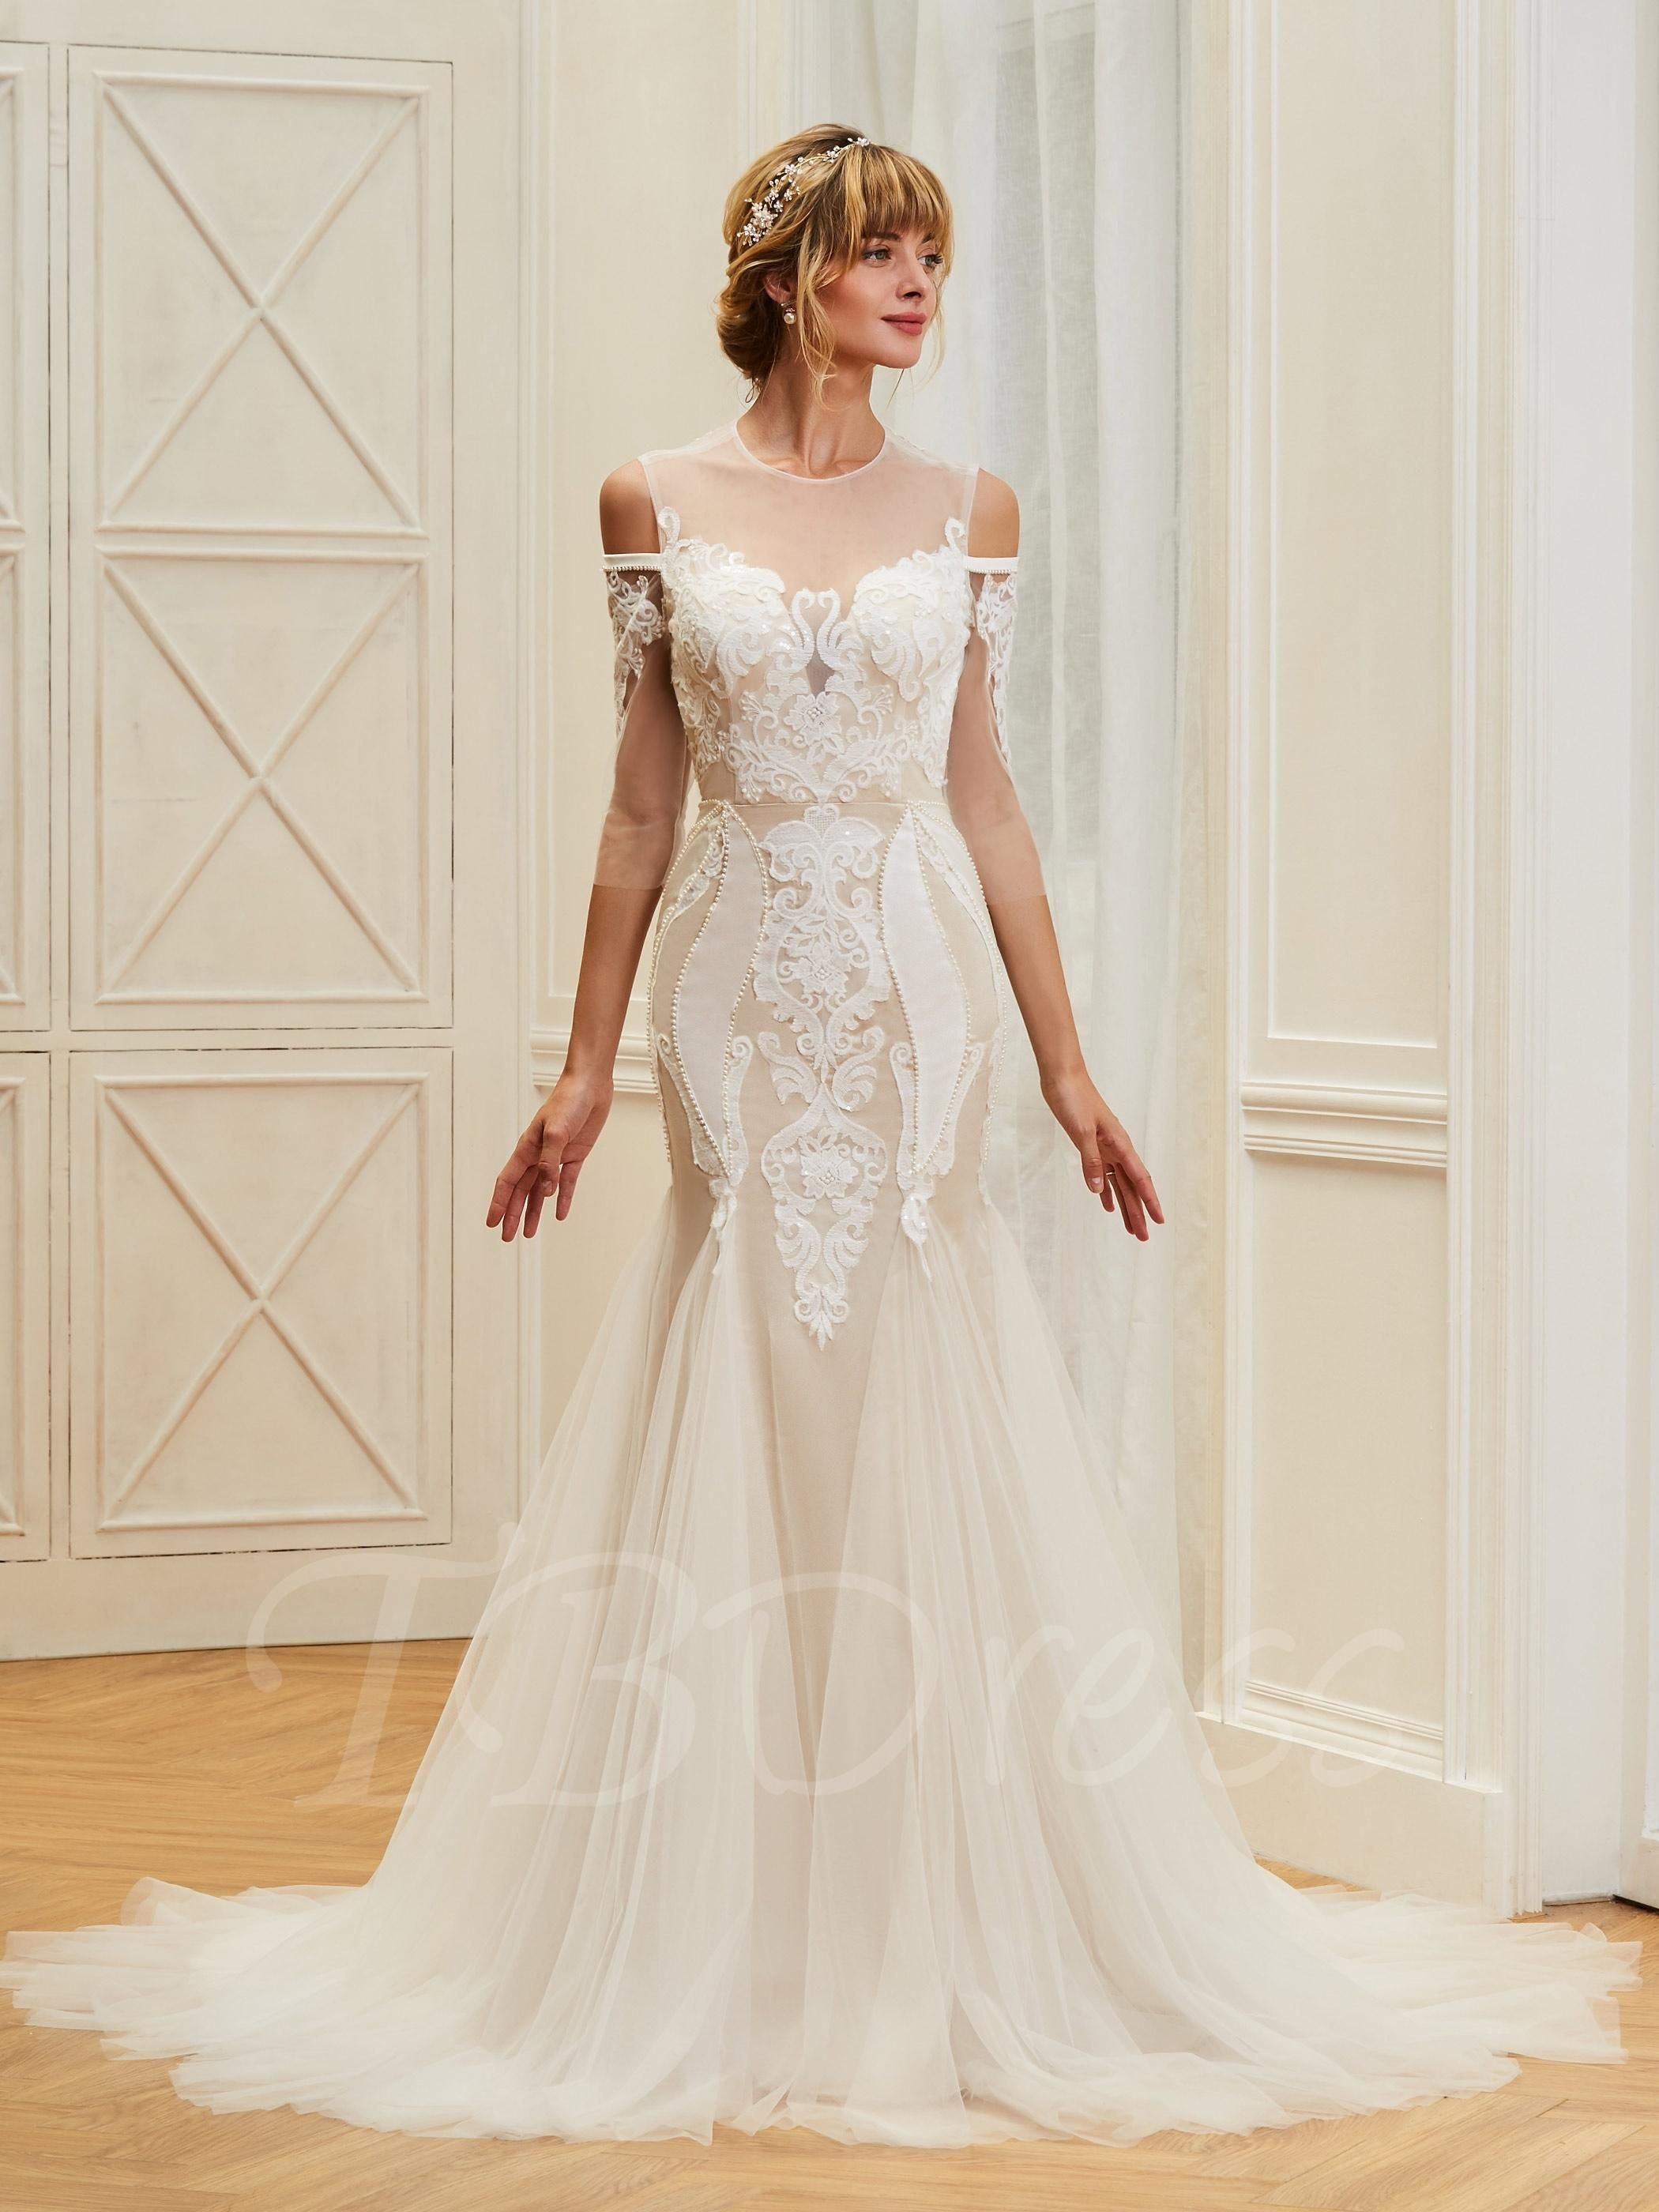 Illusion neck length sleeves mermaid backless wedding dress